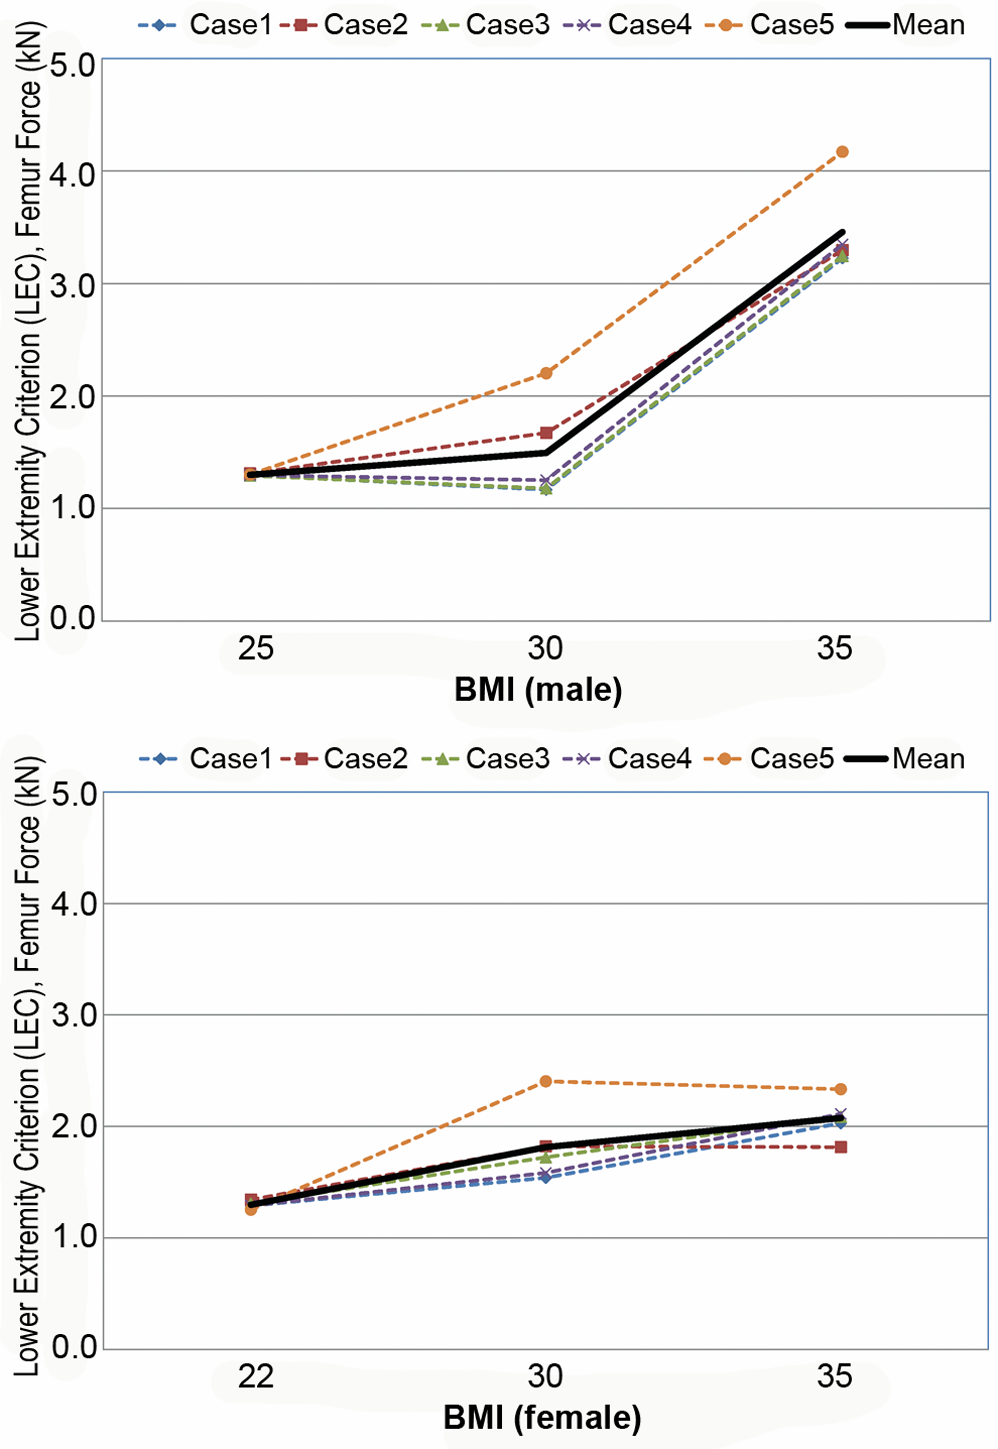 Computational investigation of the effect of obesity on the lower extremity injury criterion (LEC) for male (top) and female (bottom).